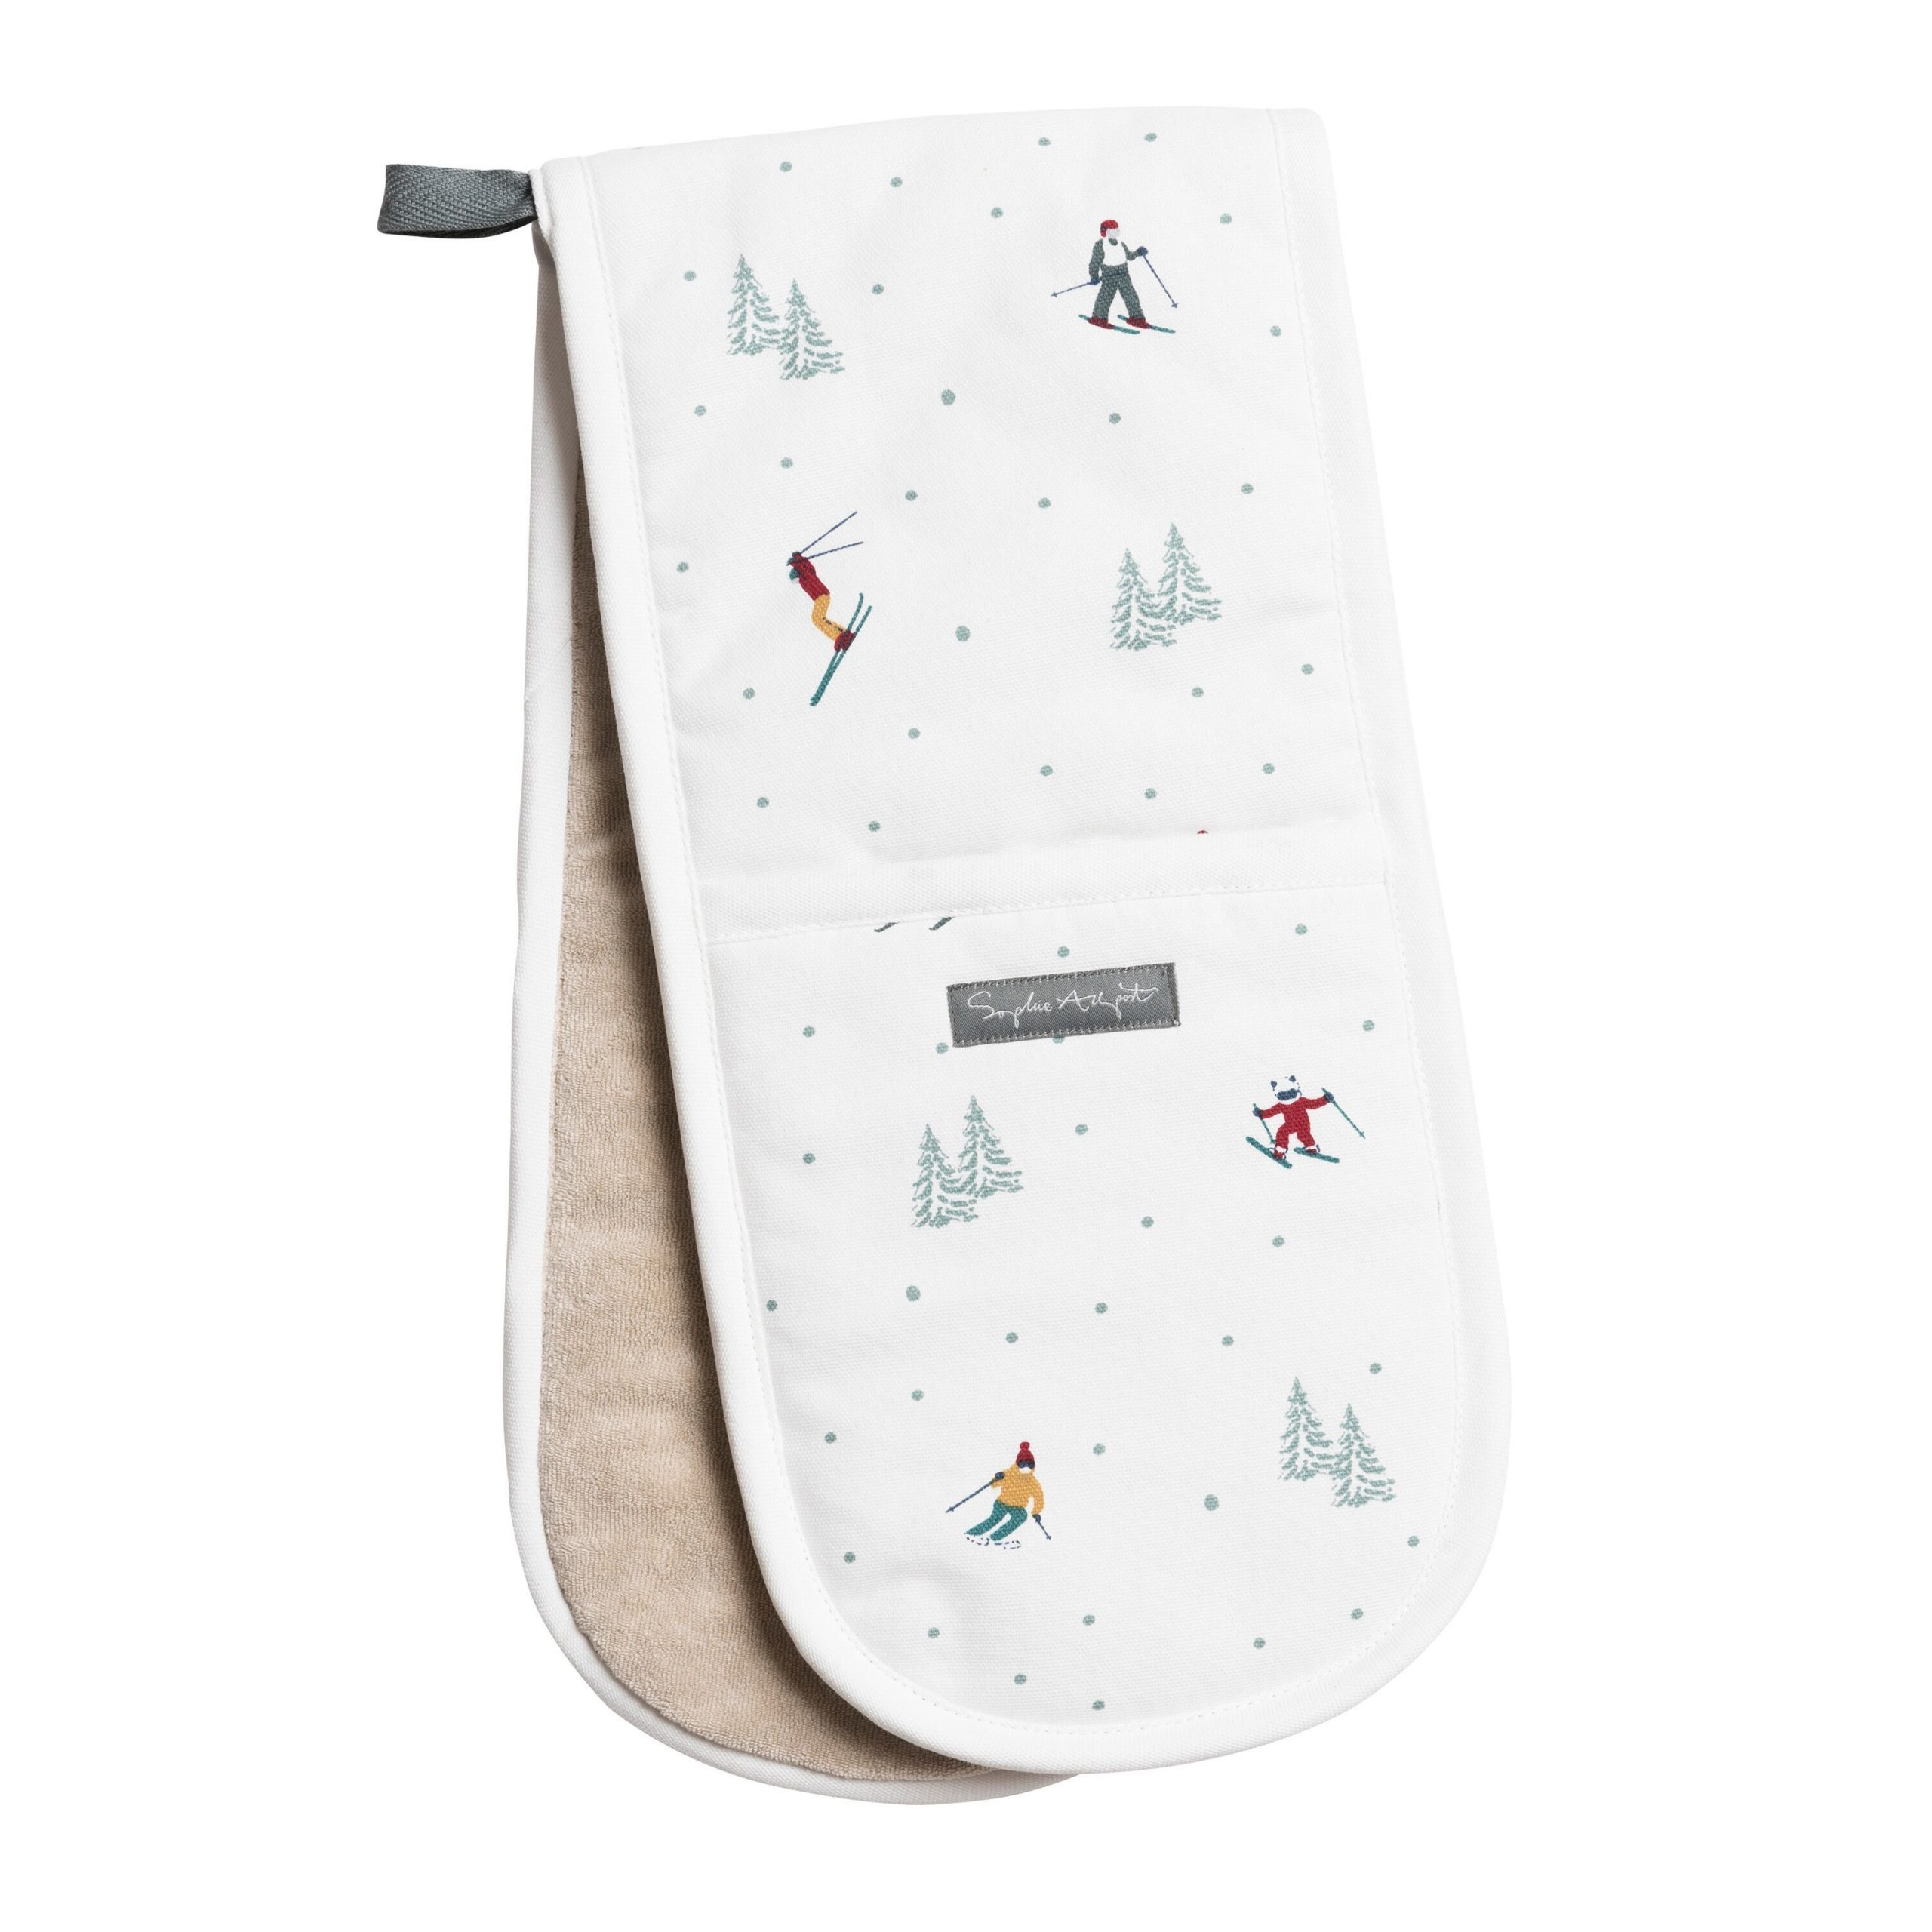 Ski Themed Oven Gloves